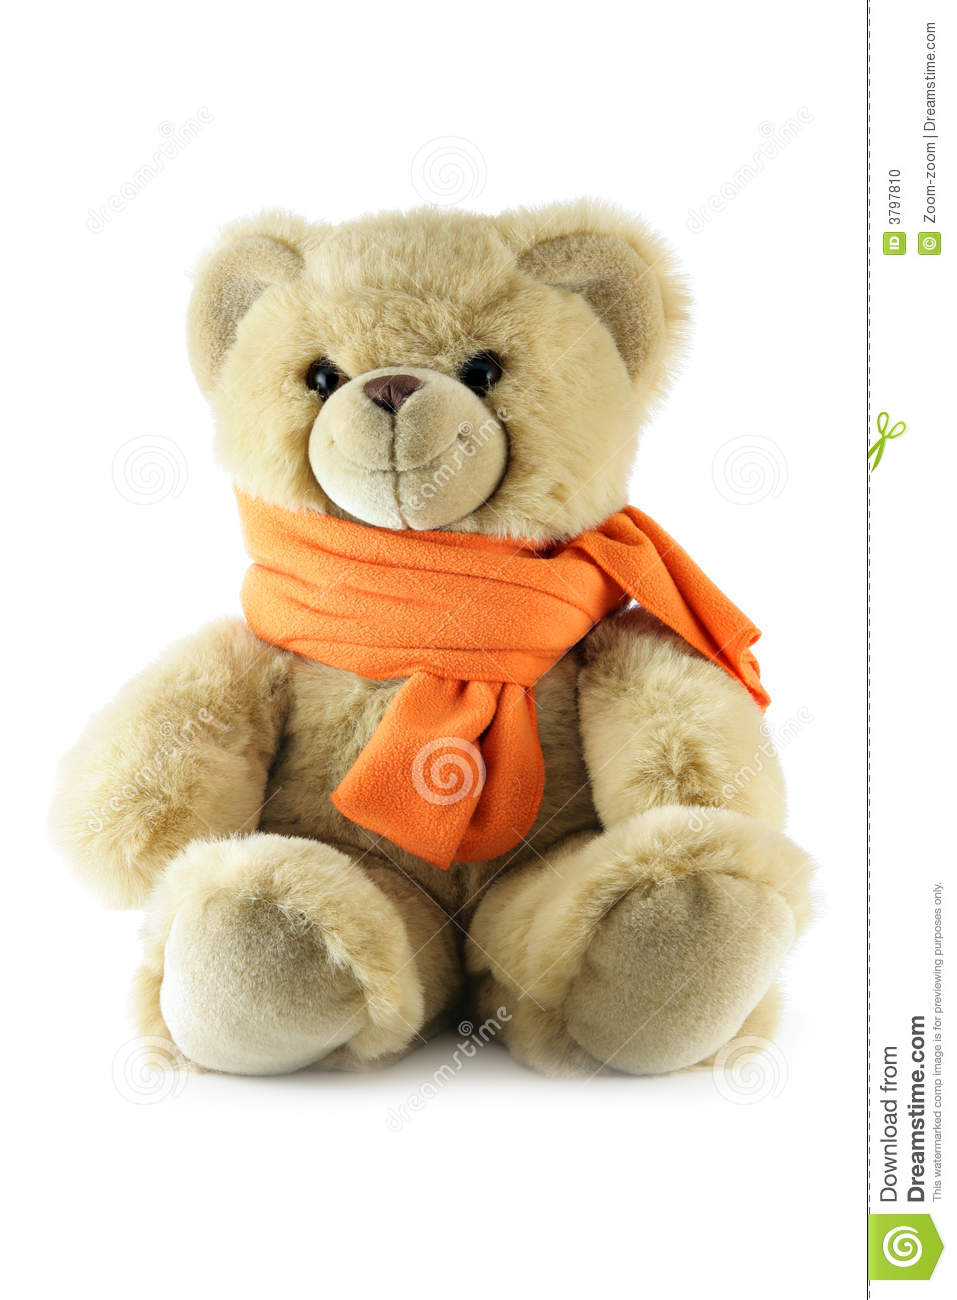 Knitting Pattern For Teddy Bear Scarf : Teddy Bear With Scarf Stock Photo - Image: 3797810